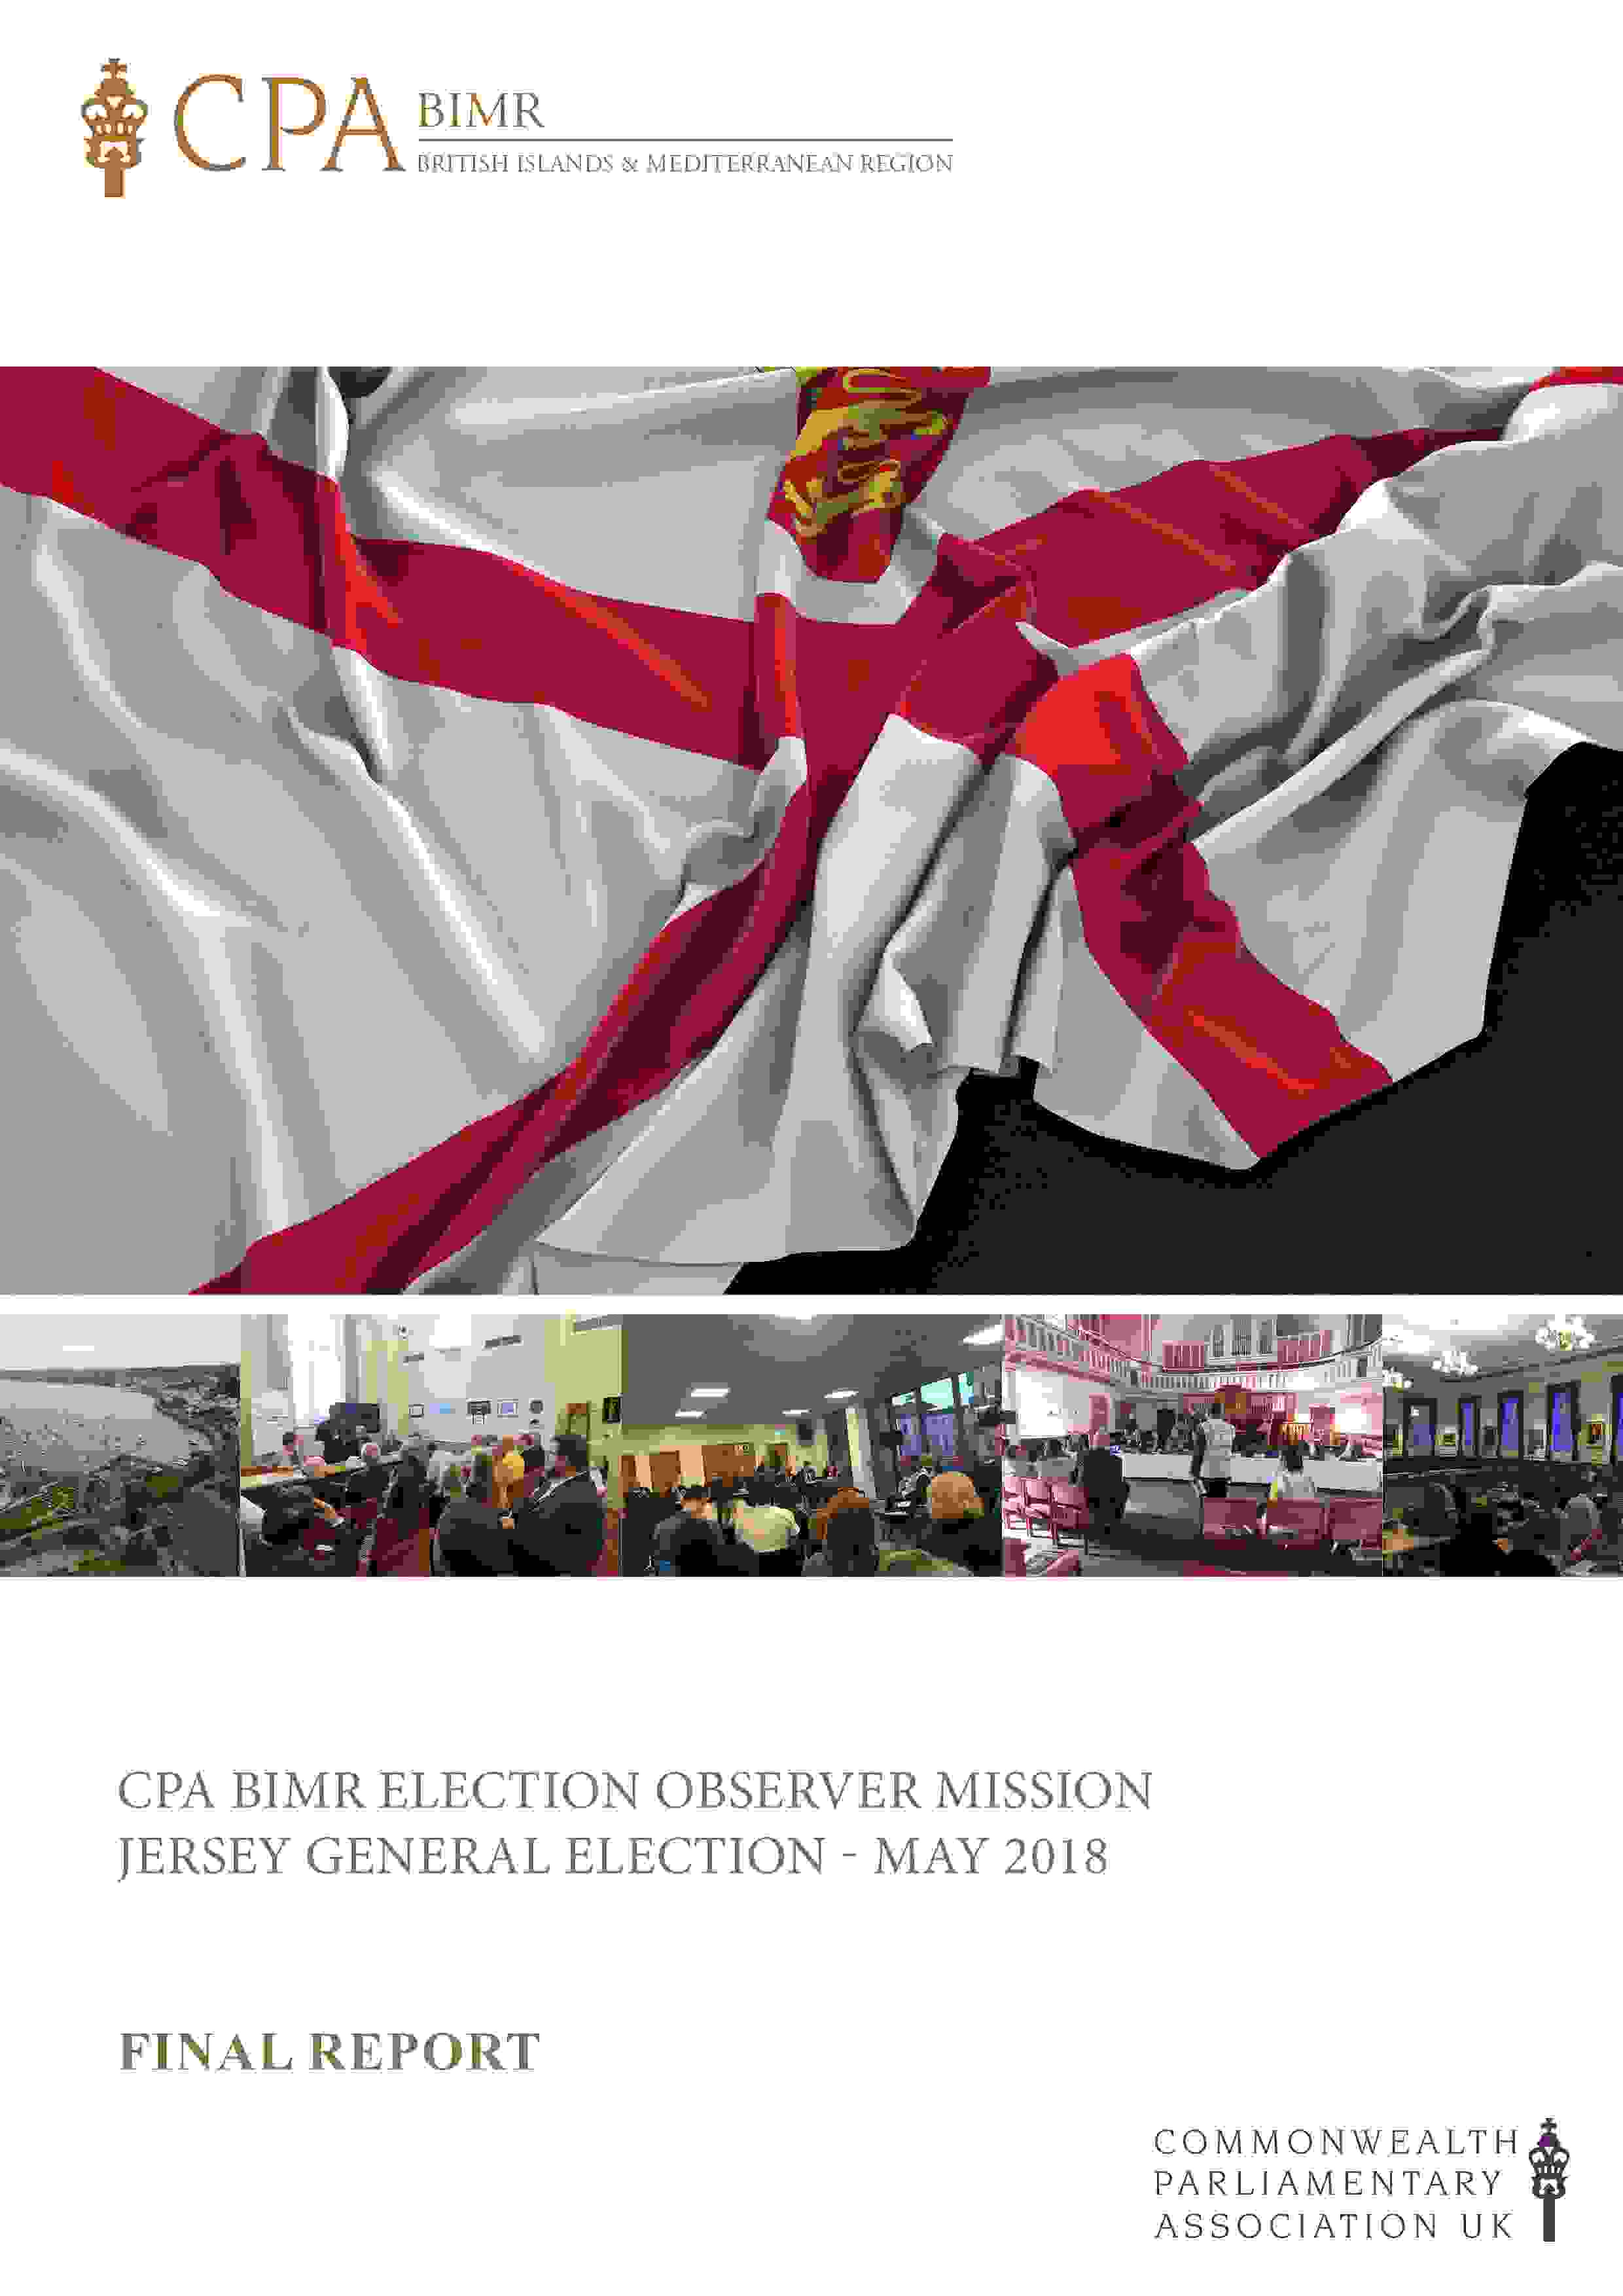 Final Jersey 2018 Election Observation Report Now Published listing image